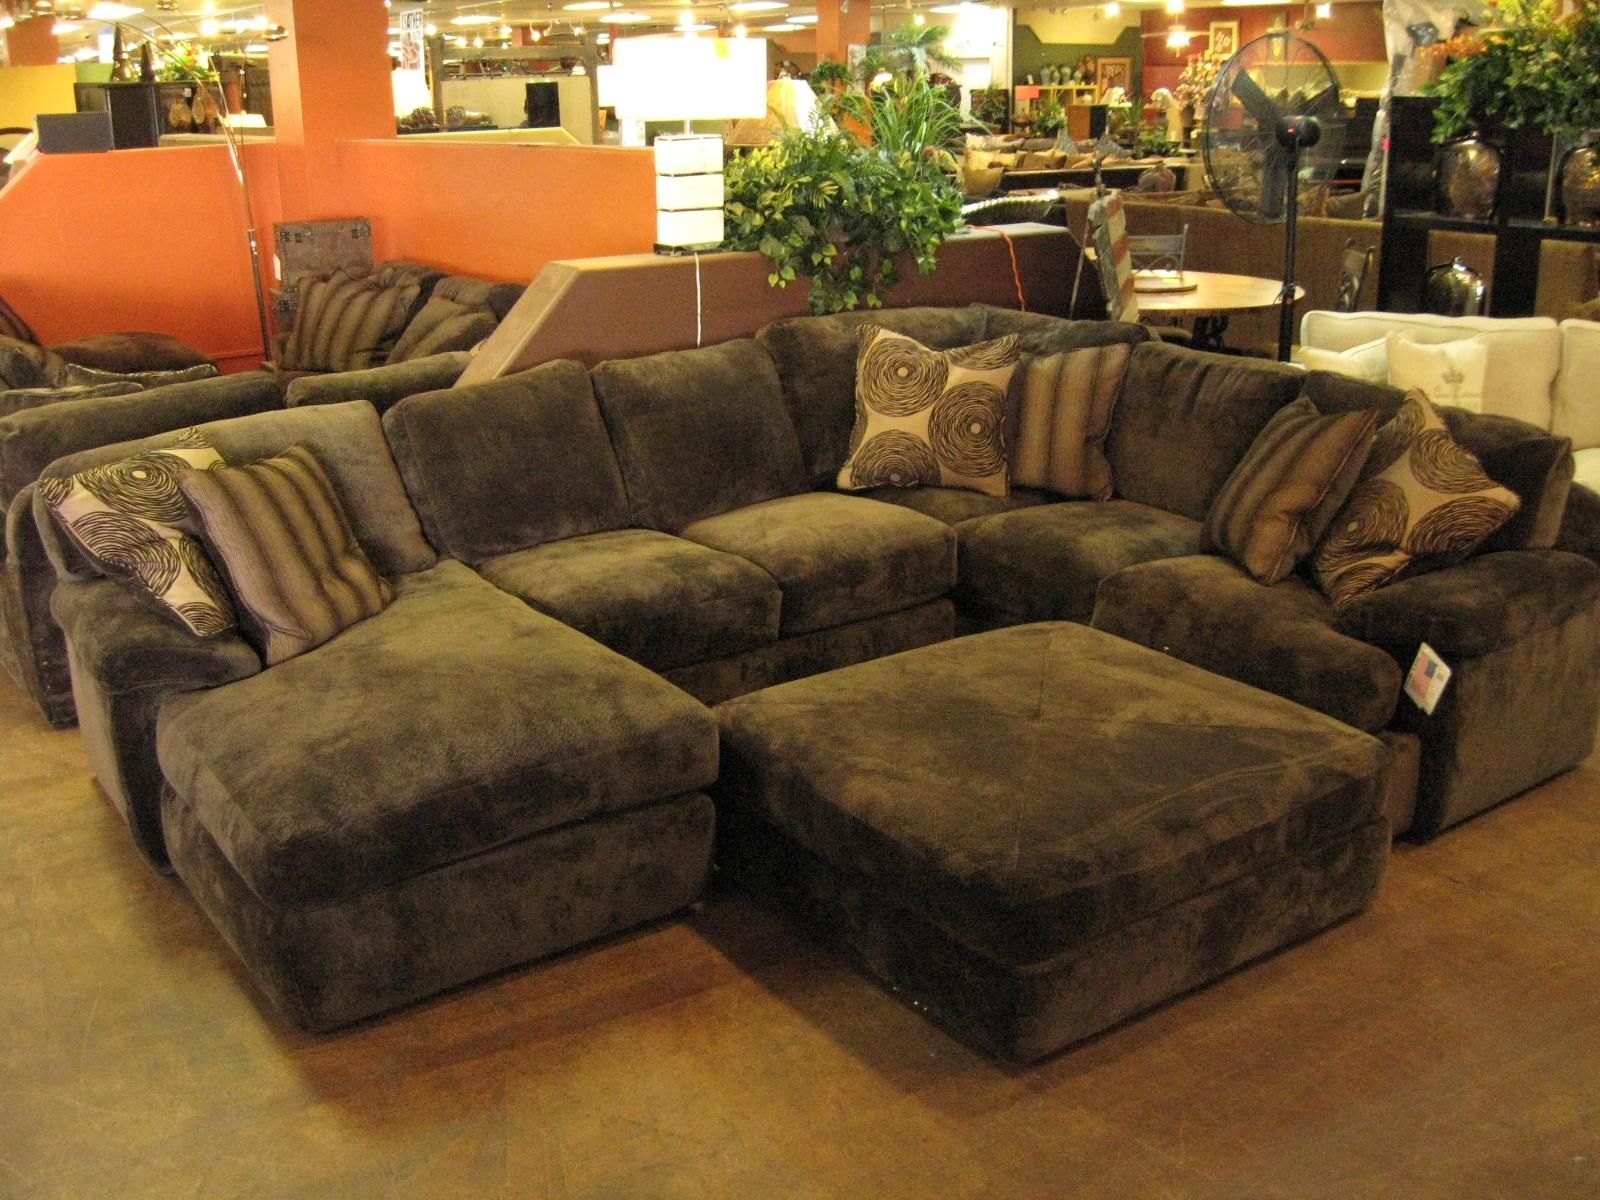 Sofas Center : Excellent Downectionalofa Images Concept Latest Intended For Down Feather Sectional Sofa (View 4 of 15)